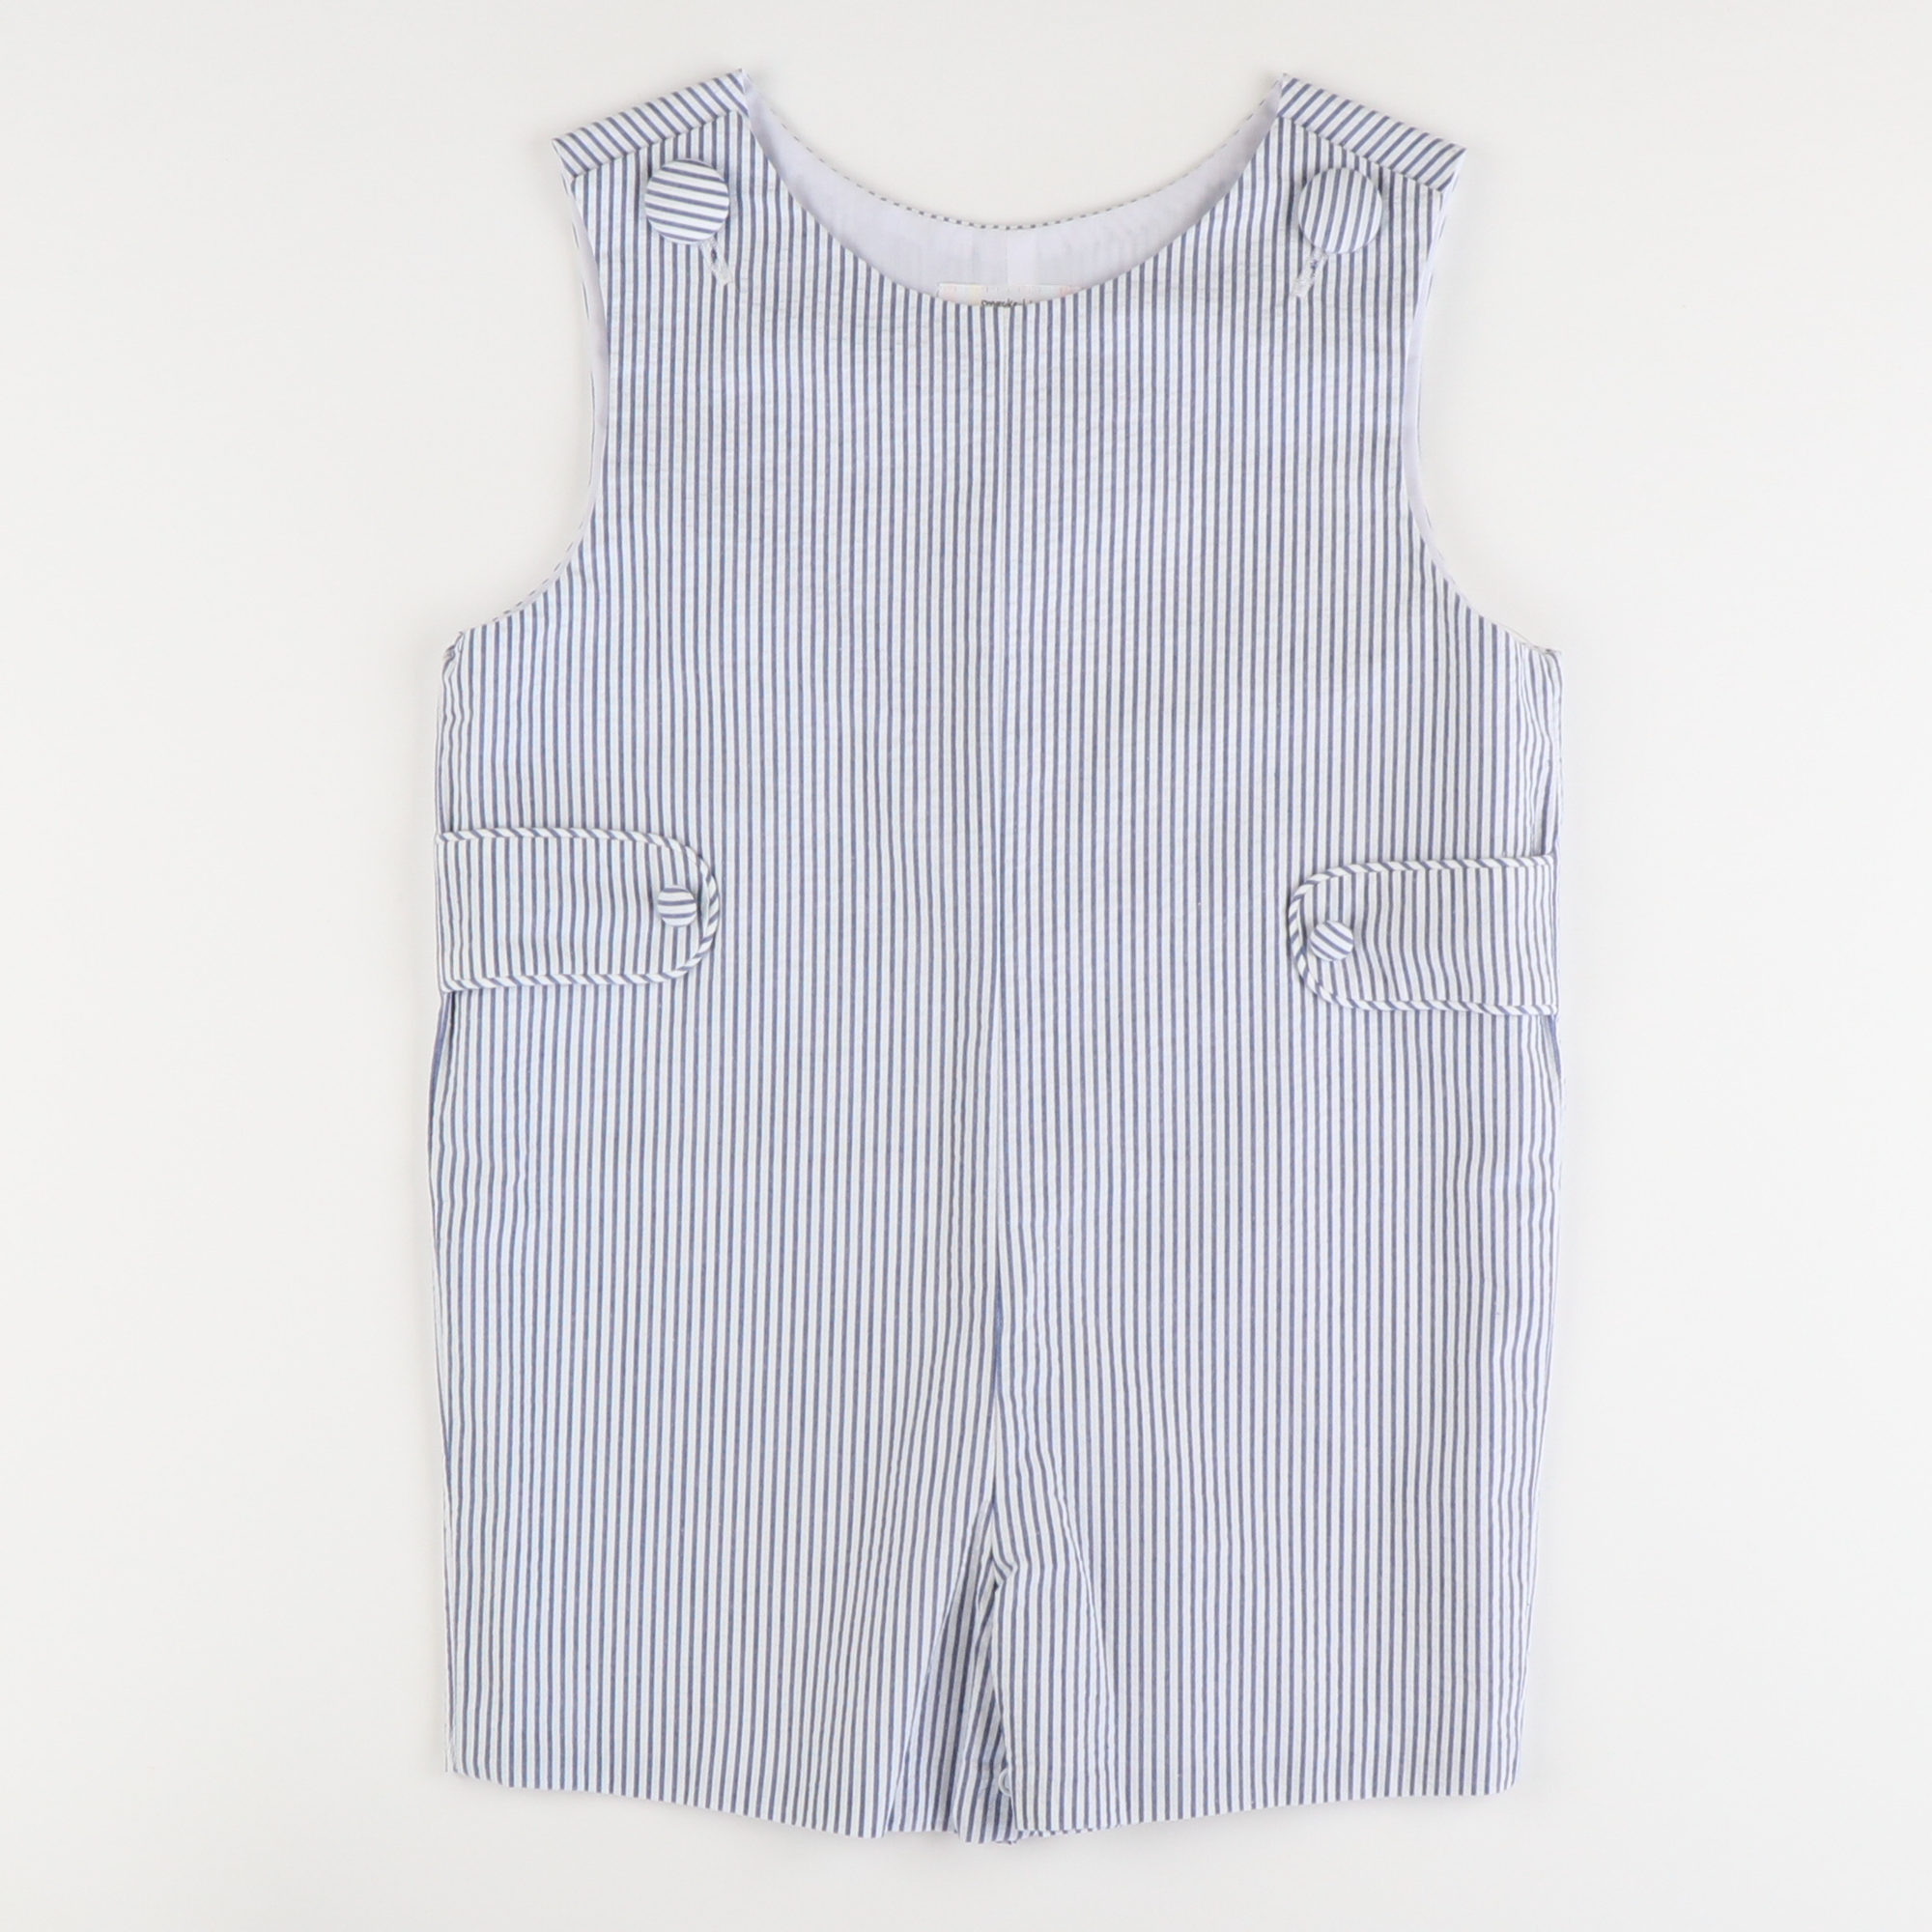 Signature Tab Shortall - Blue Stripe Seersucker